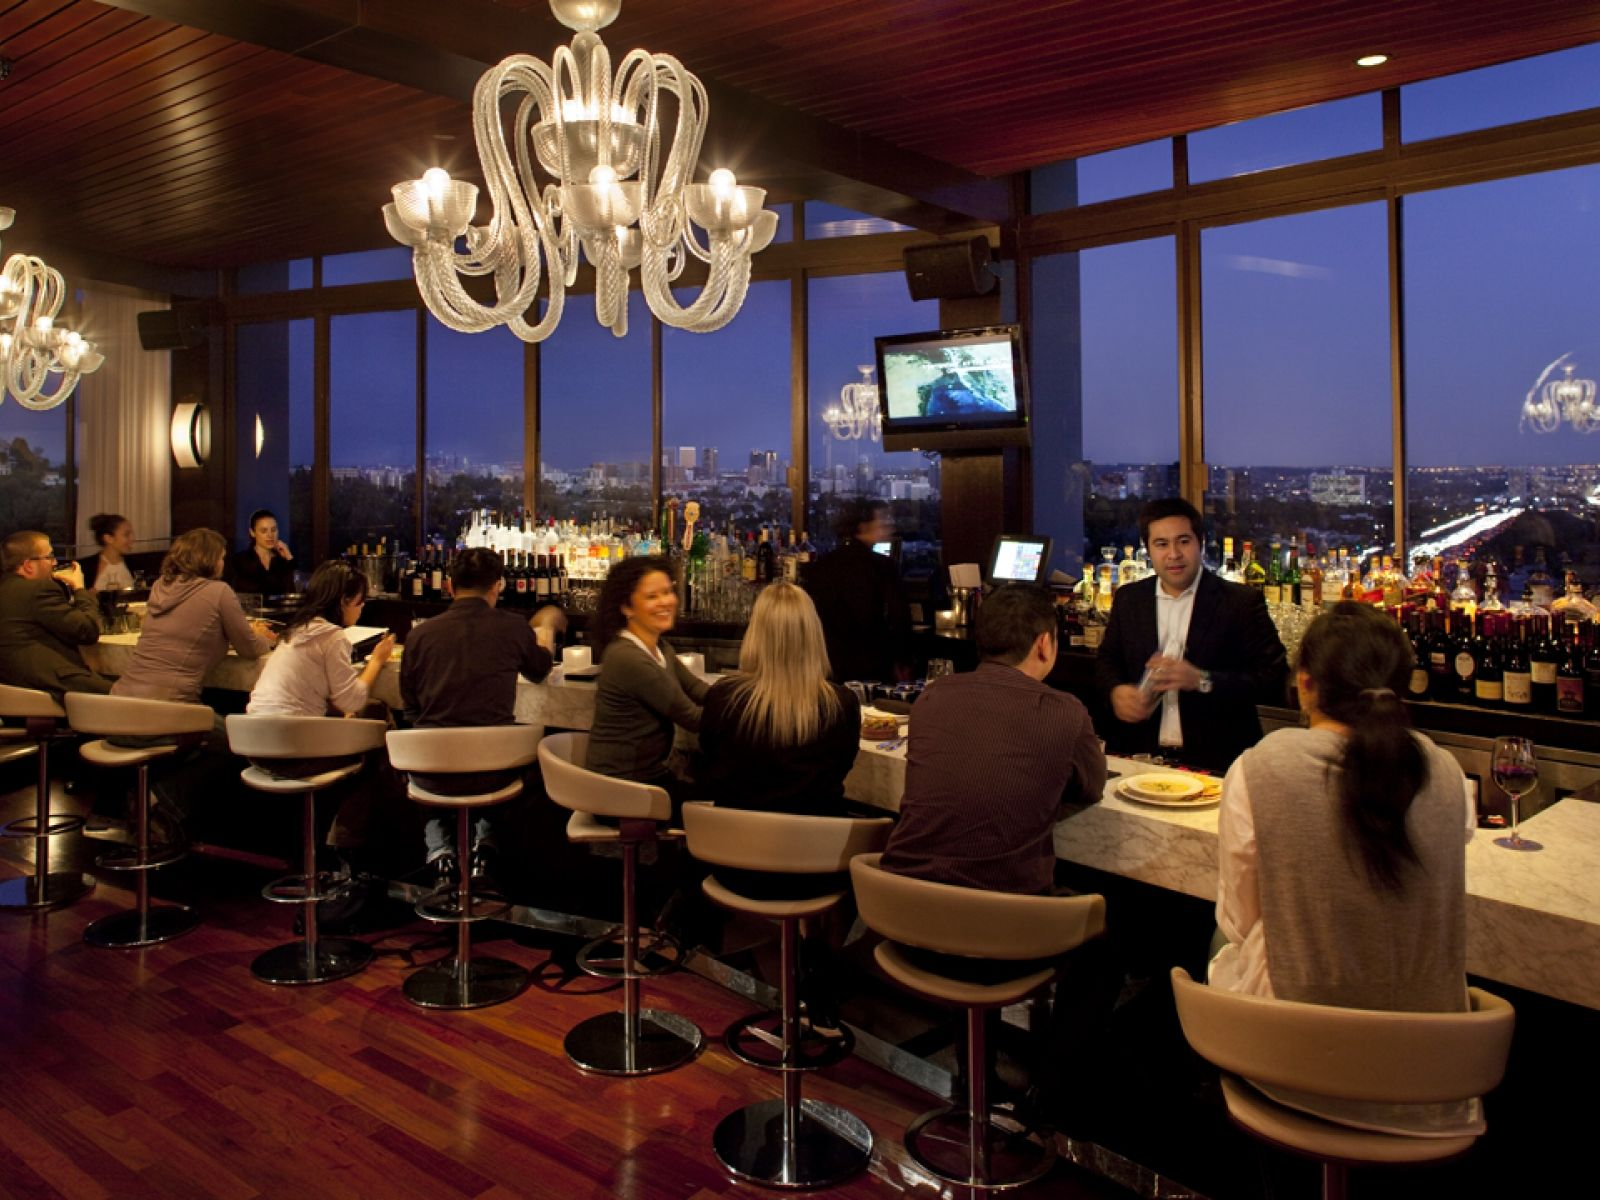 The Best Restaurants With A View In Los Angeles Discover Los Angeles With Images Restaurant Funny Dating Memes Los Angeles Restaurants